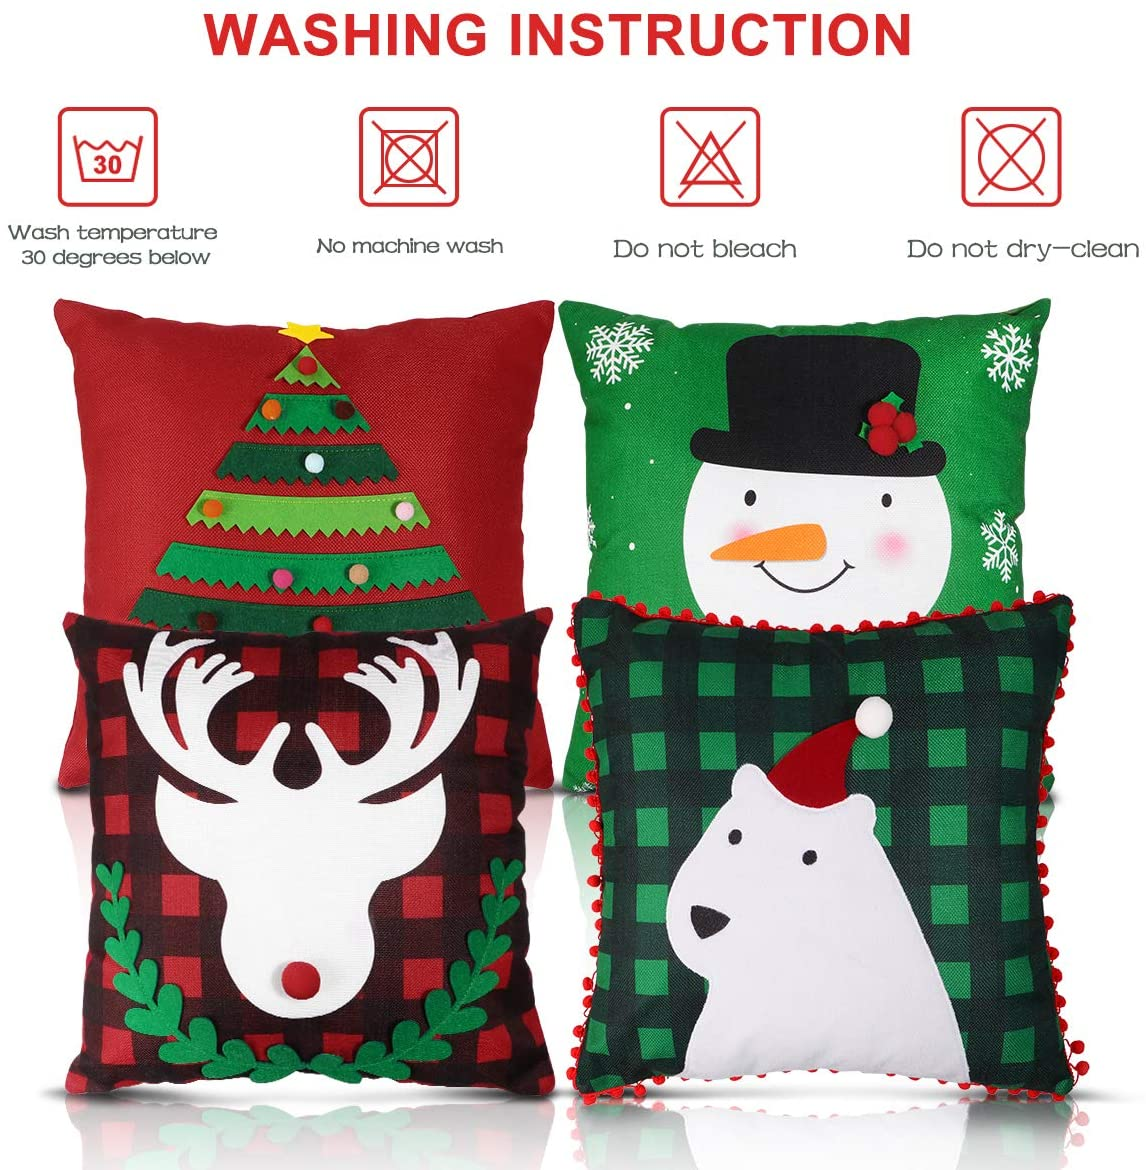 Christmas Pillow Covers, Four Designs Pillow Cases Cushion Covers for Christmas Home Decorations 4PCS